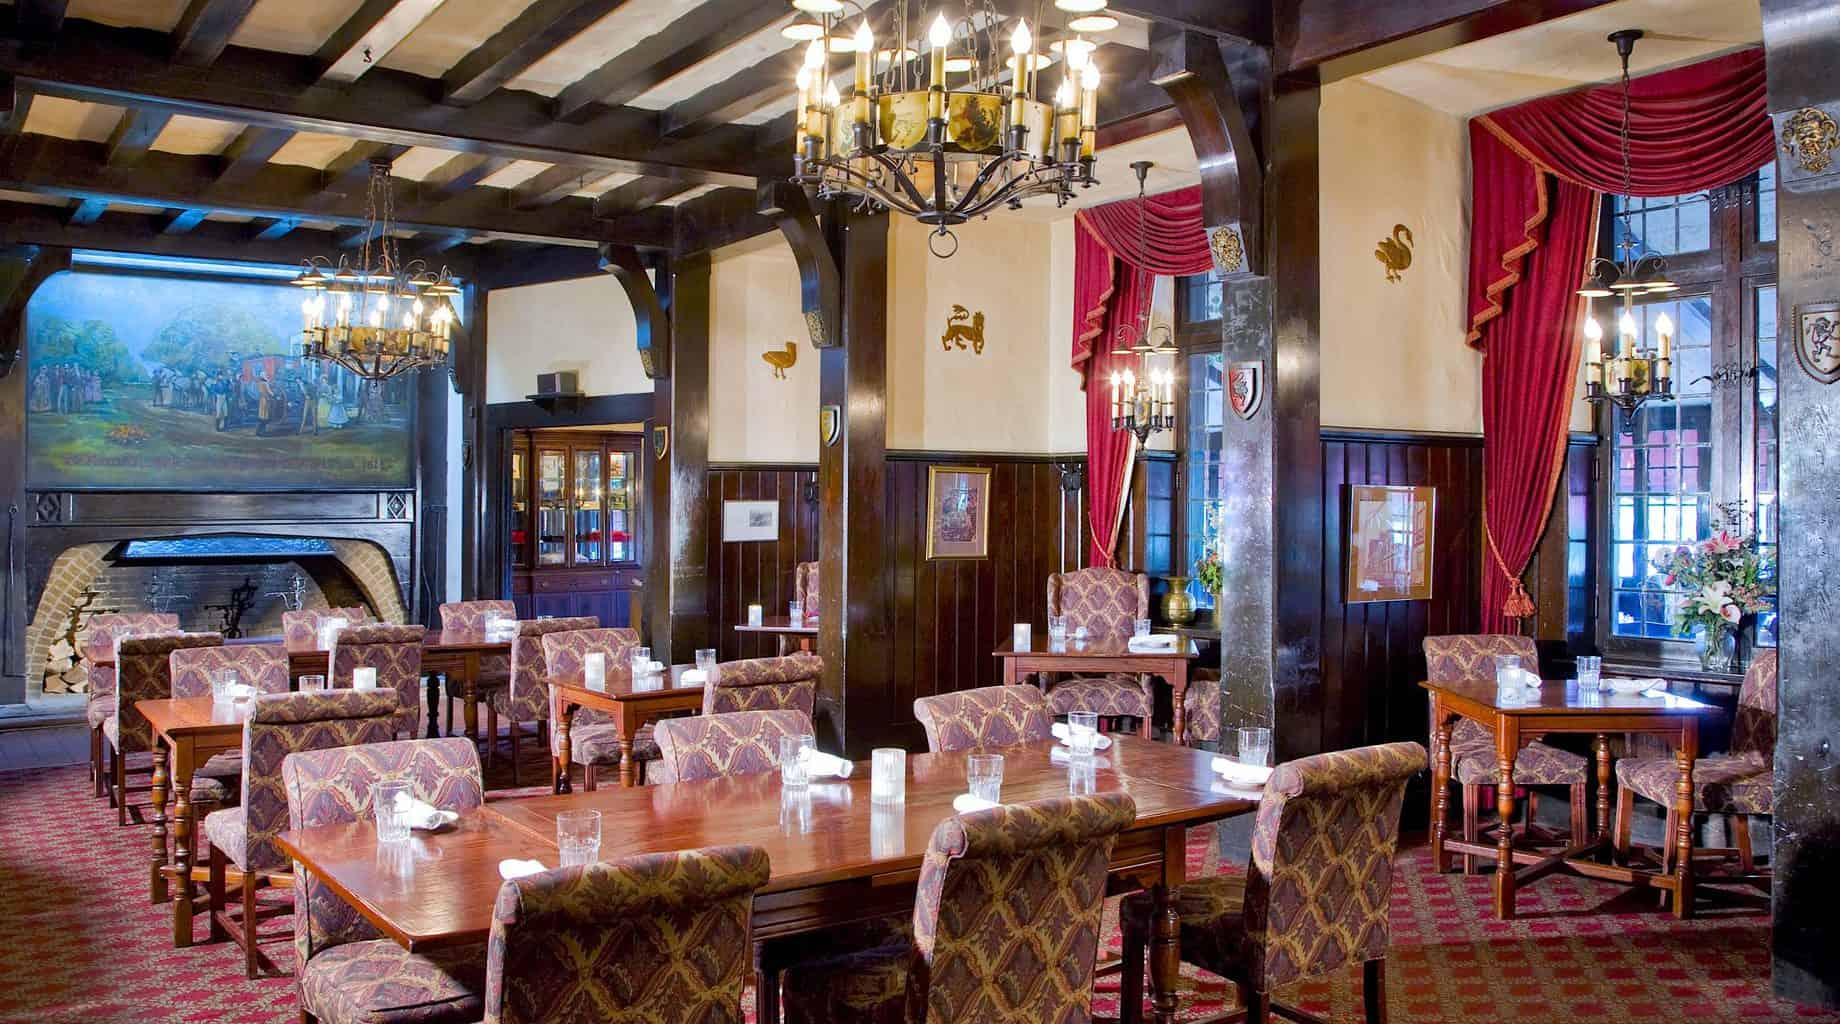 The refined and stately beamed ceilings, vibrant red curtains, upholstered chairs, and wood tables of the restuarant at the Red Coach Inn.